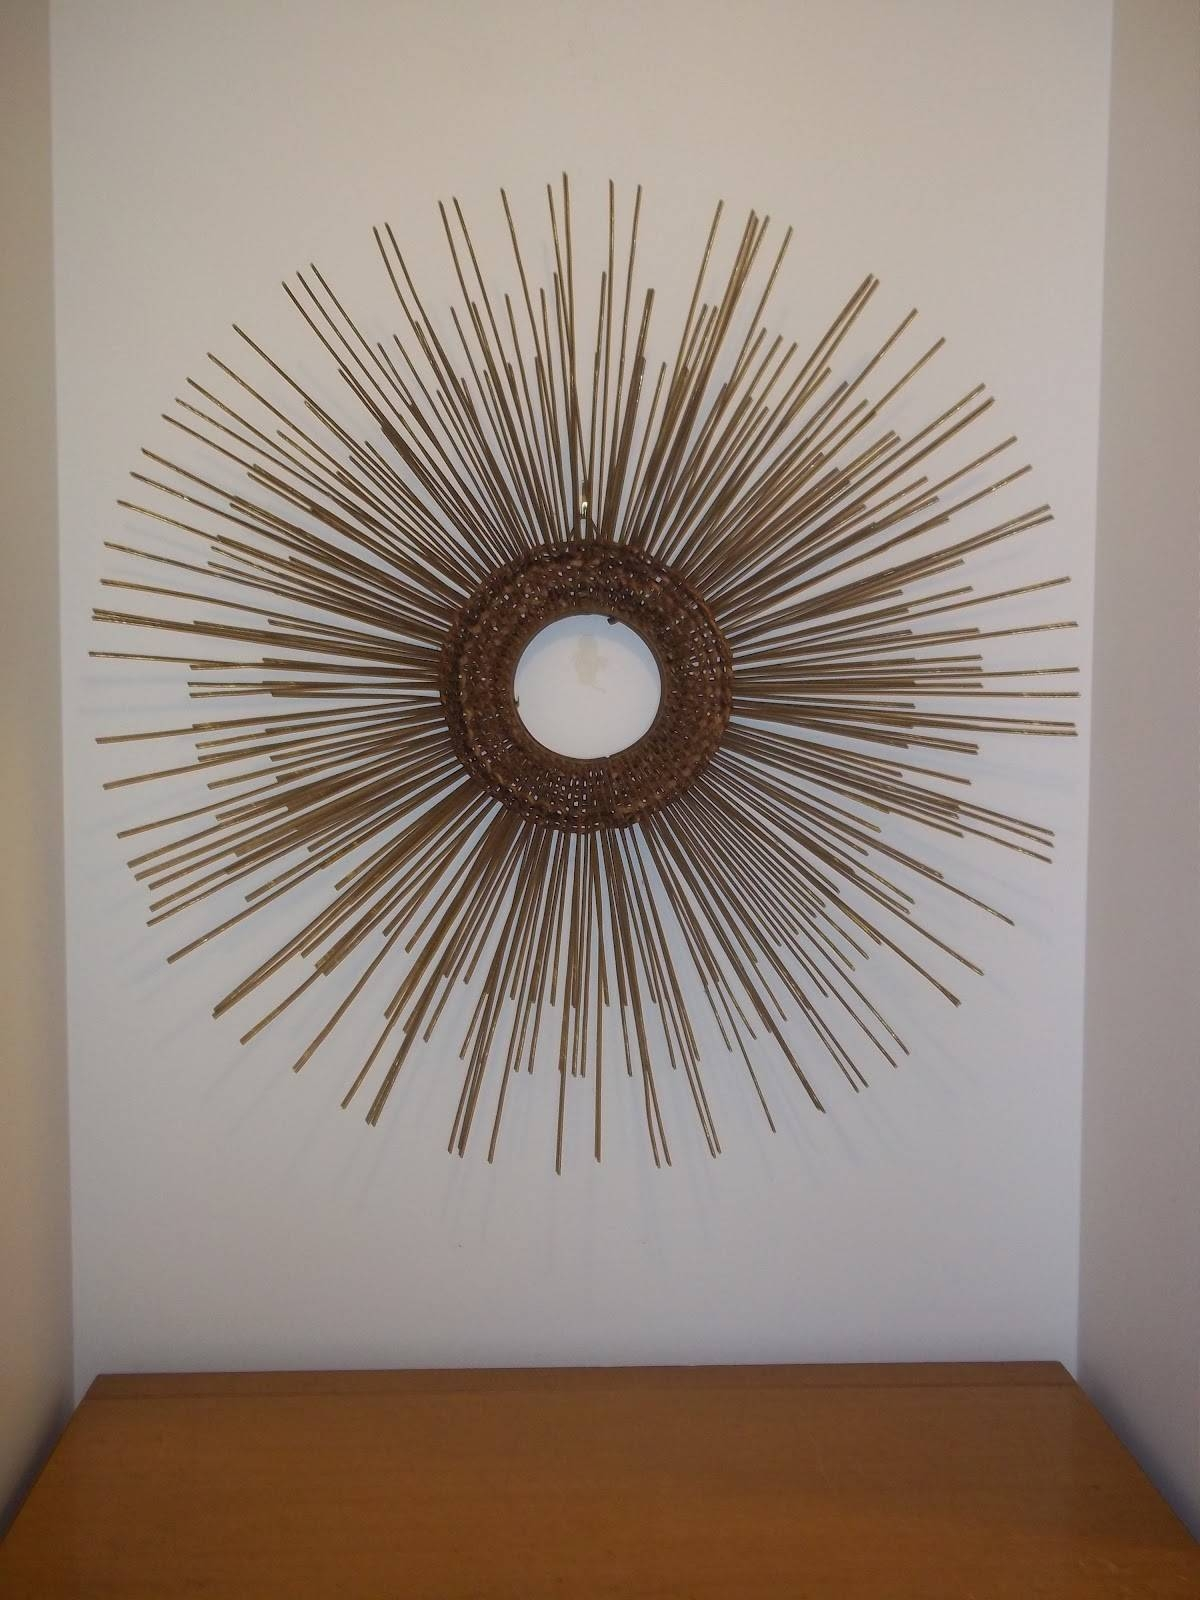 Modern20: Mid Century Modern Starburst Sculpture In The Style Of Throughout Current Mid Century Modern Metal Wall Art (View 15 of 20)